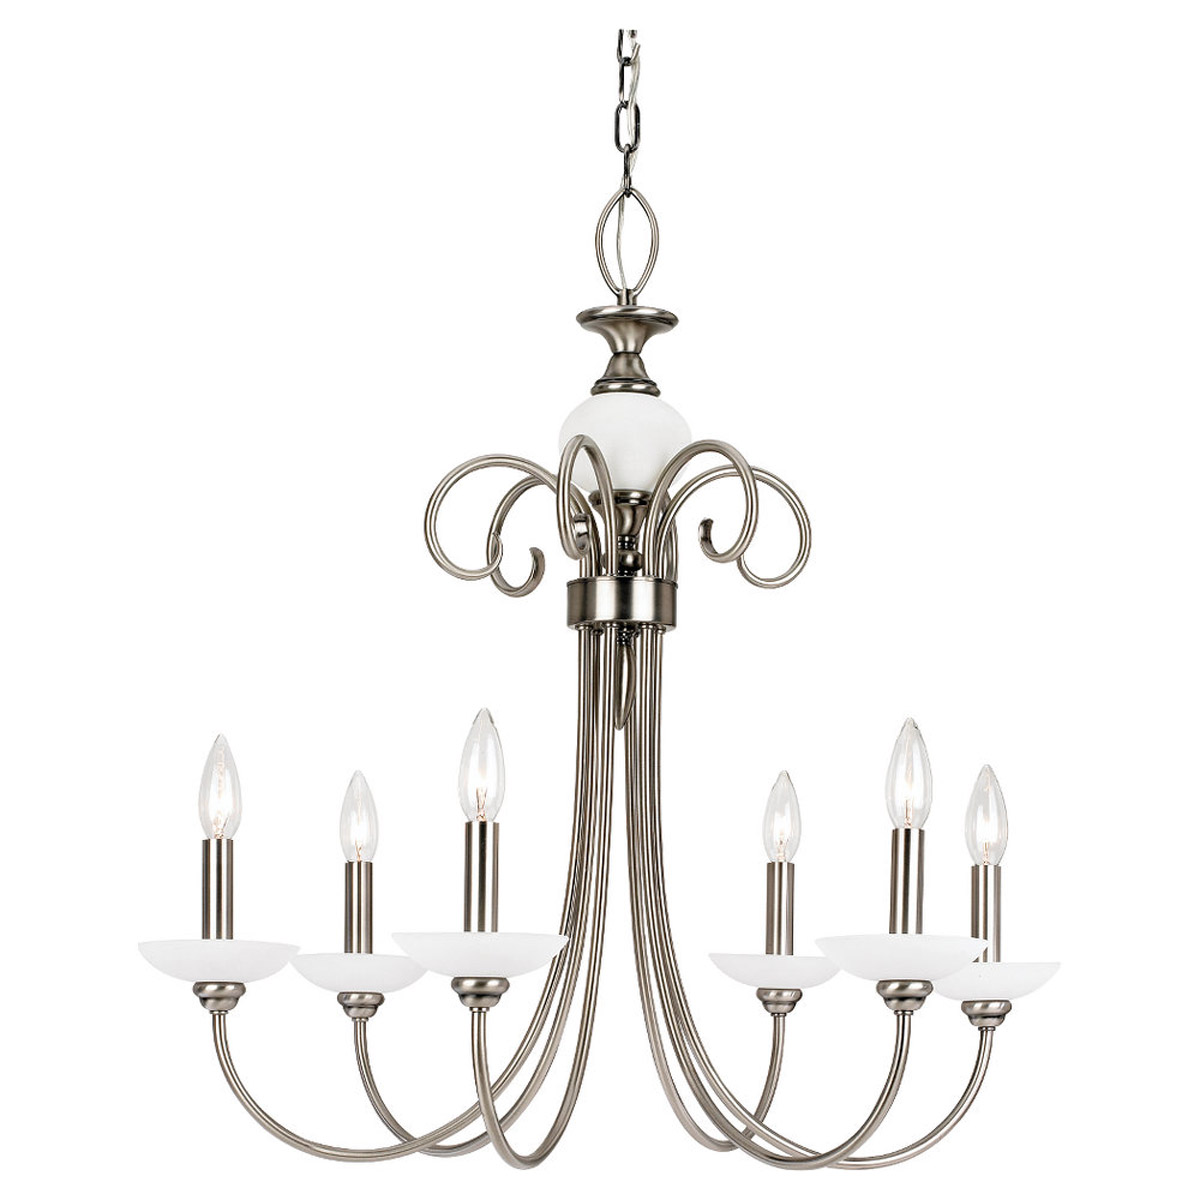 Sea Gull Lighting Montclaire 6 Light Chandelier in Antique Brushed Nickel 31107-965 photo